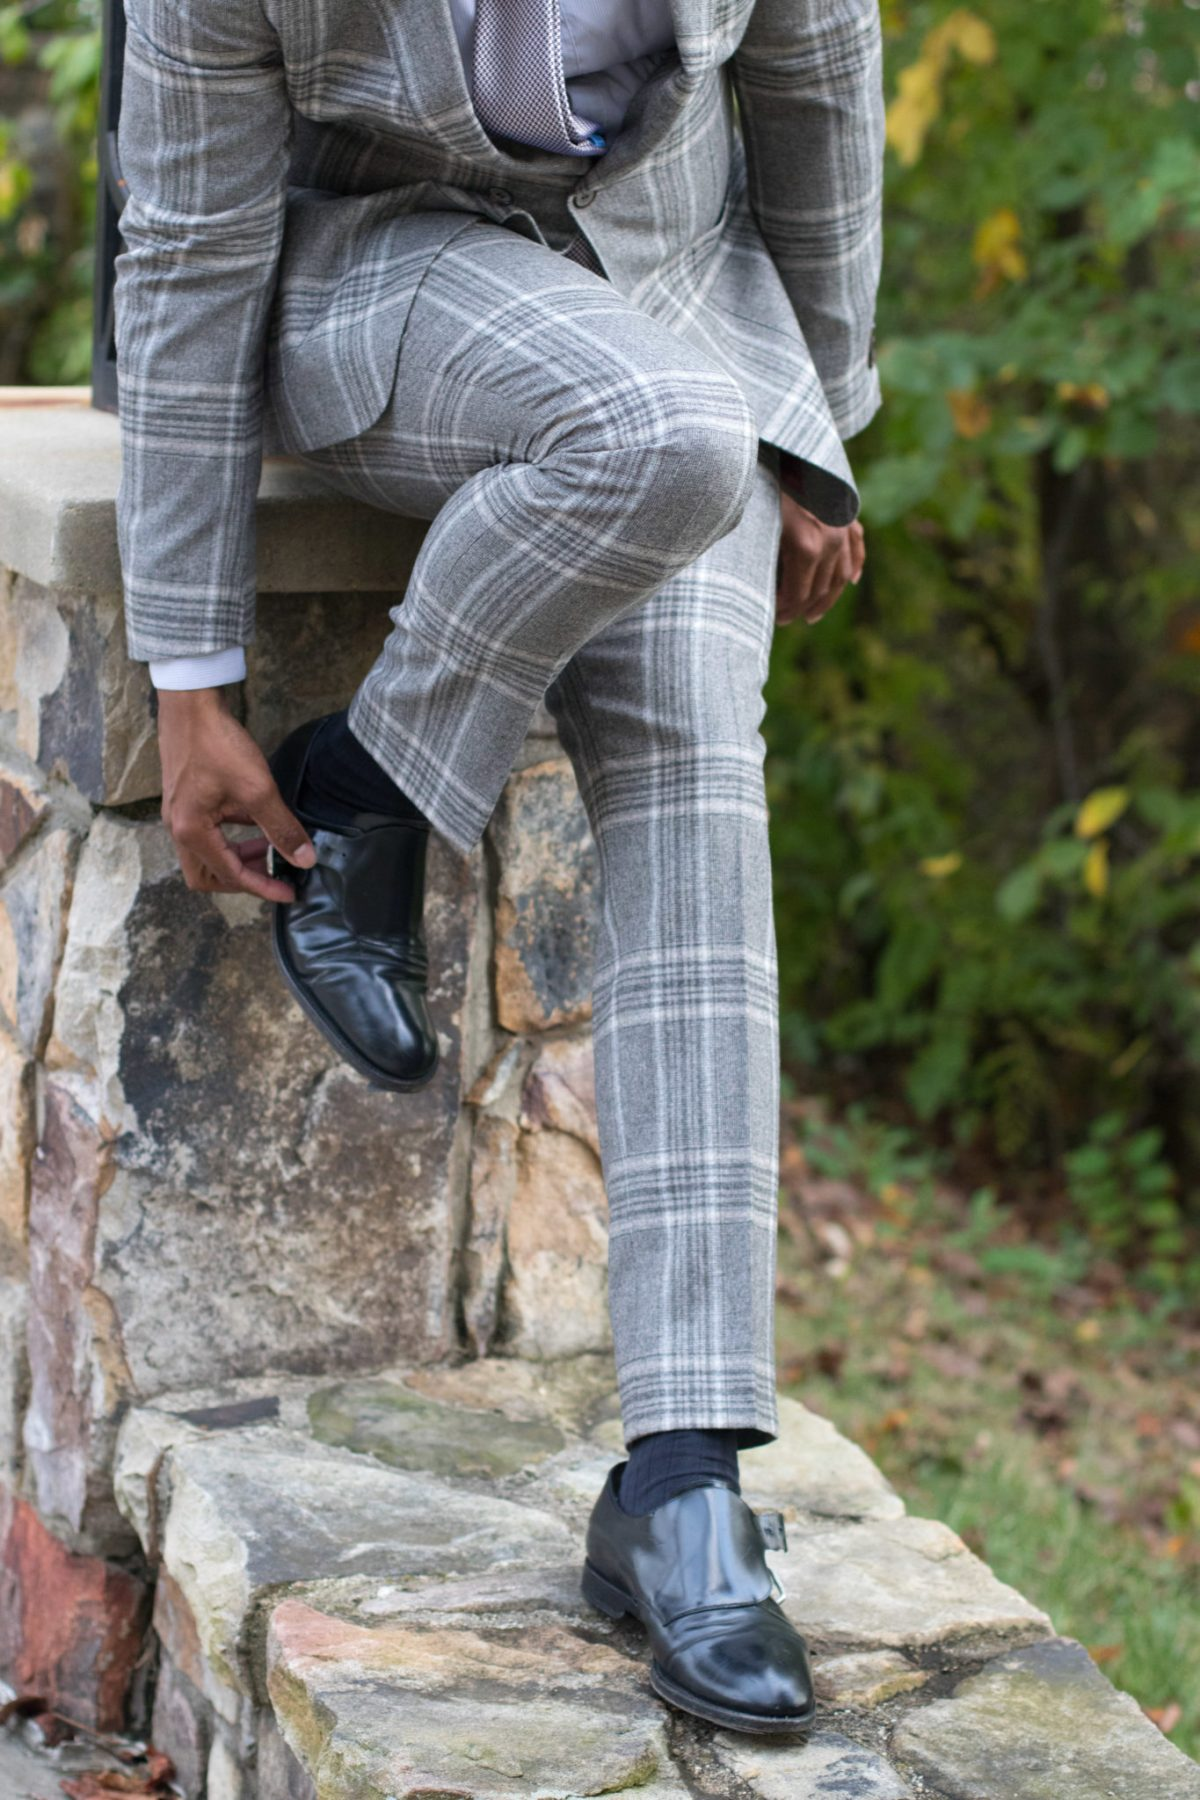 Dressing in a Plaid suit